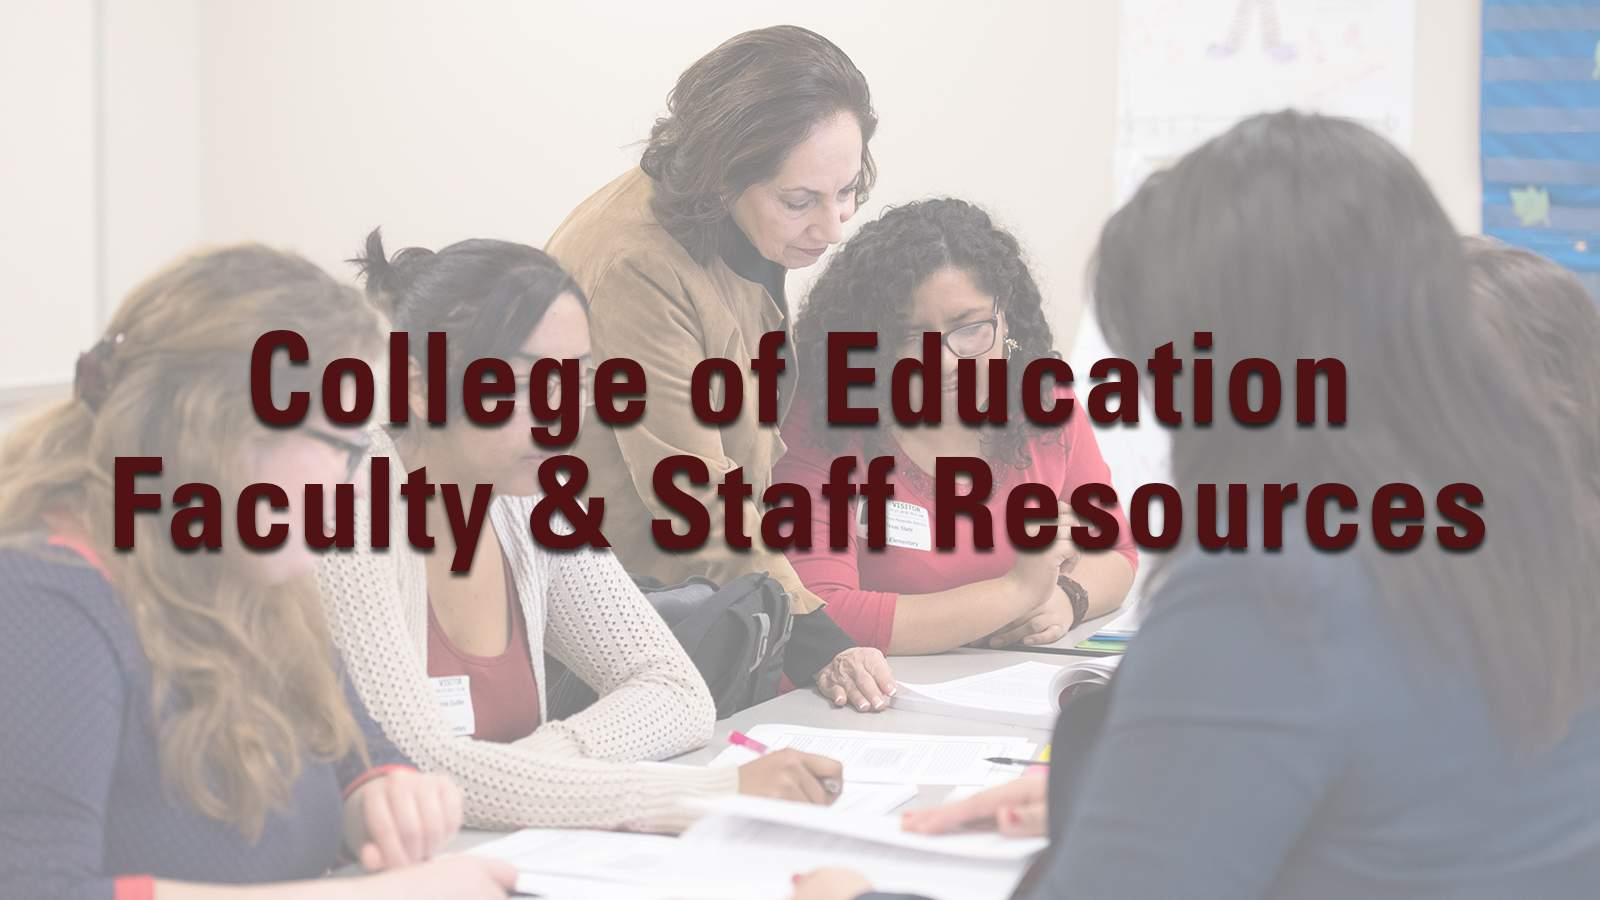 COE Faculty & Staff Resources